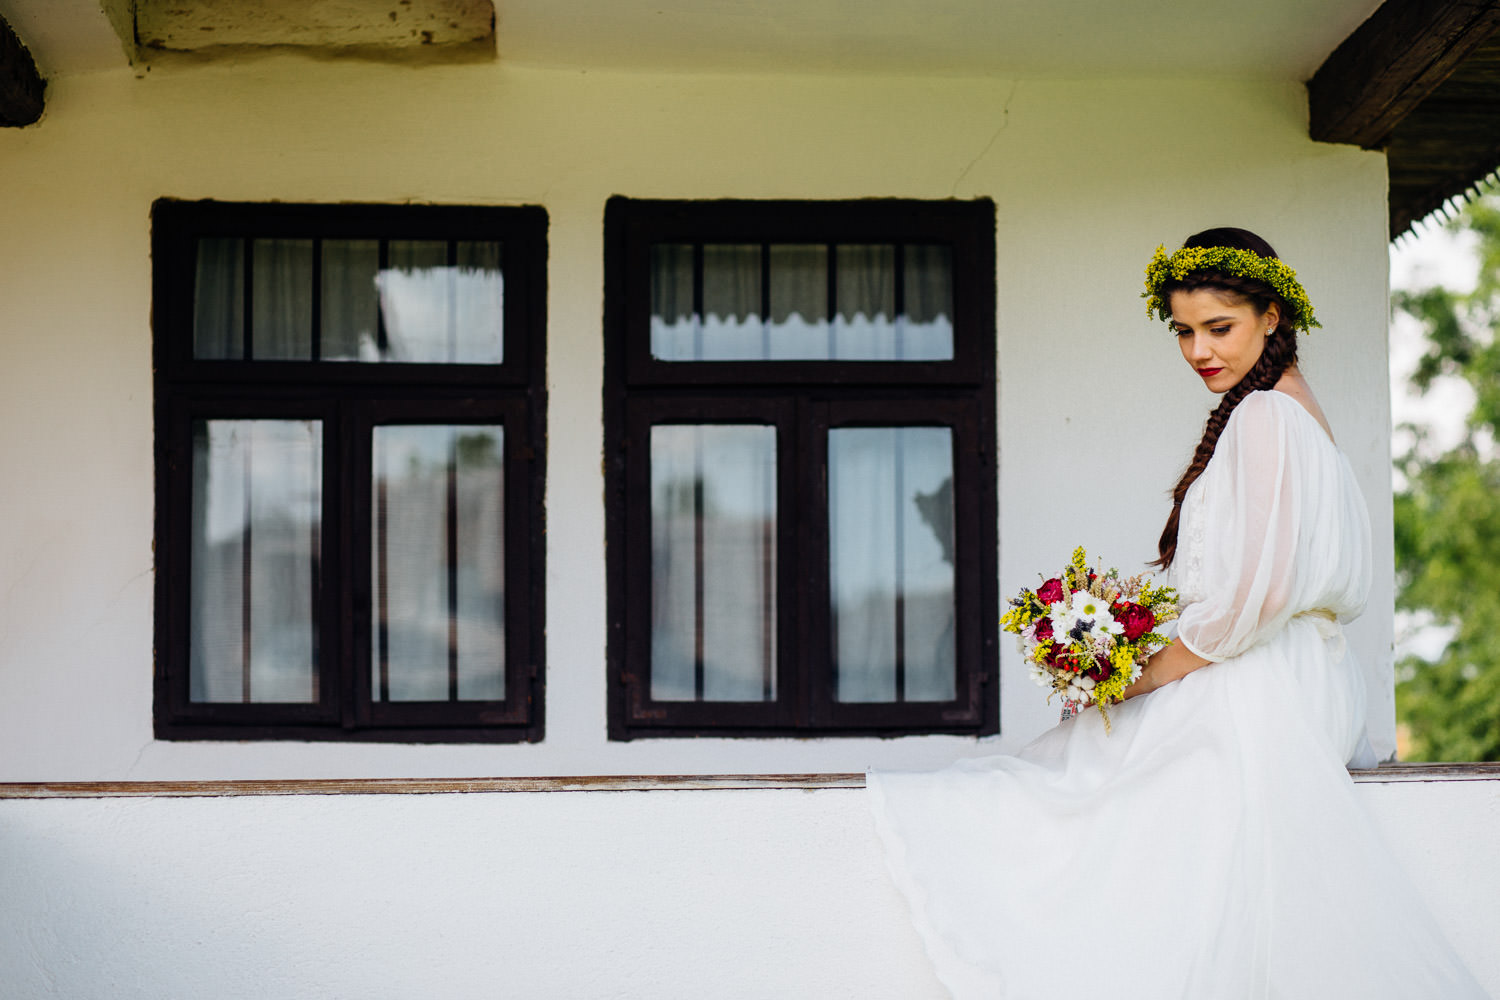 Bogdan & Luiza civil wedding Pitesti-1047